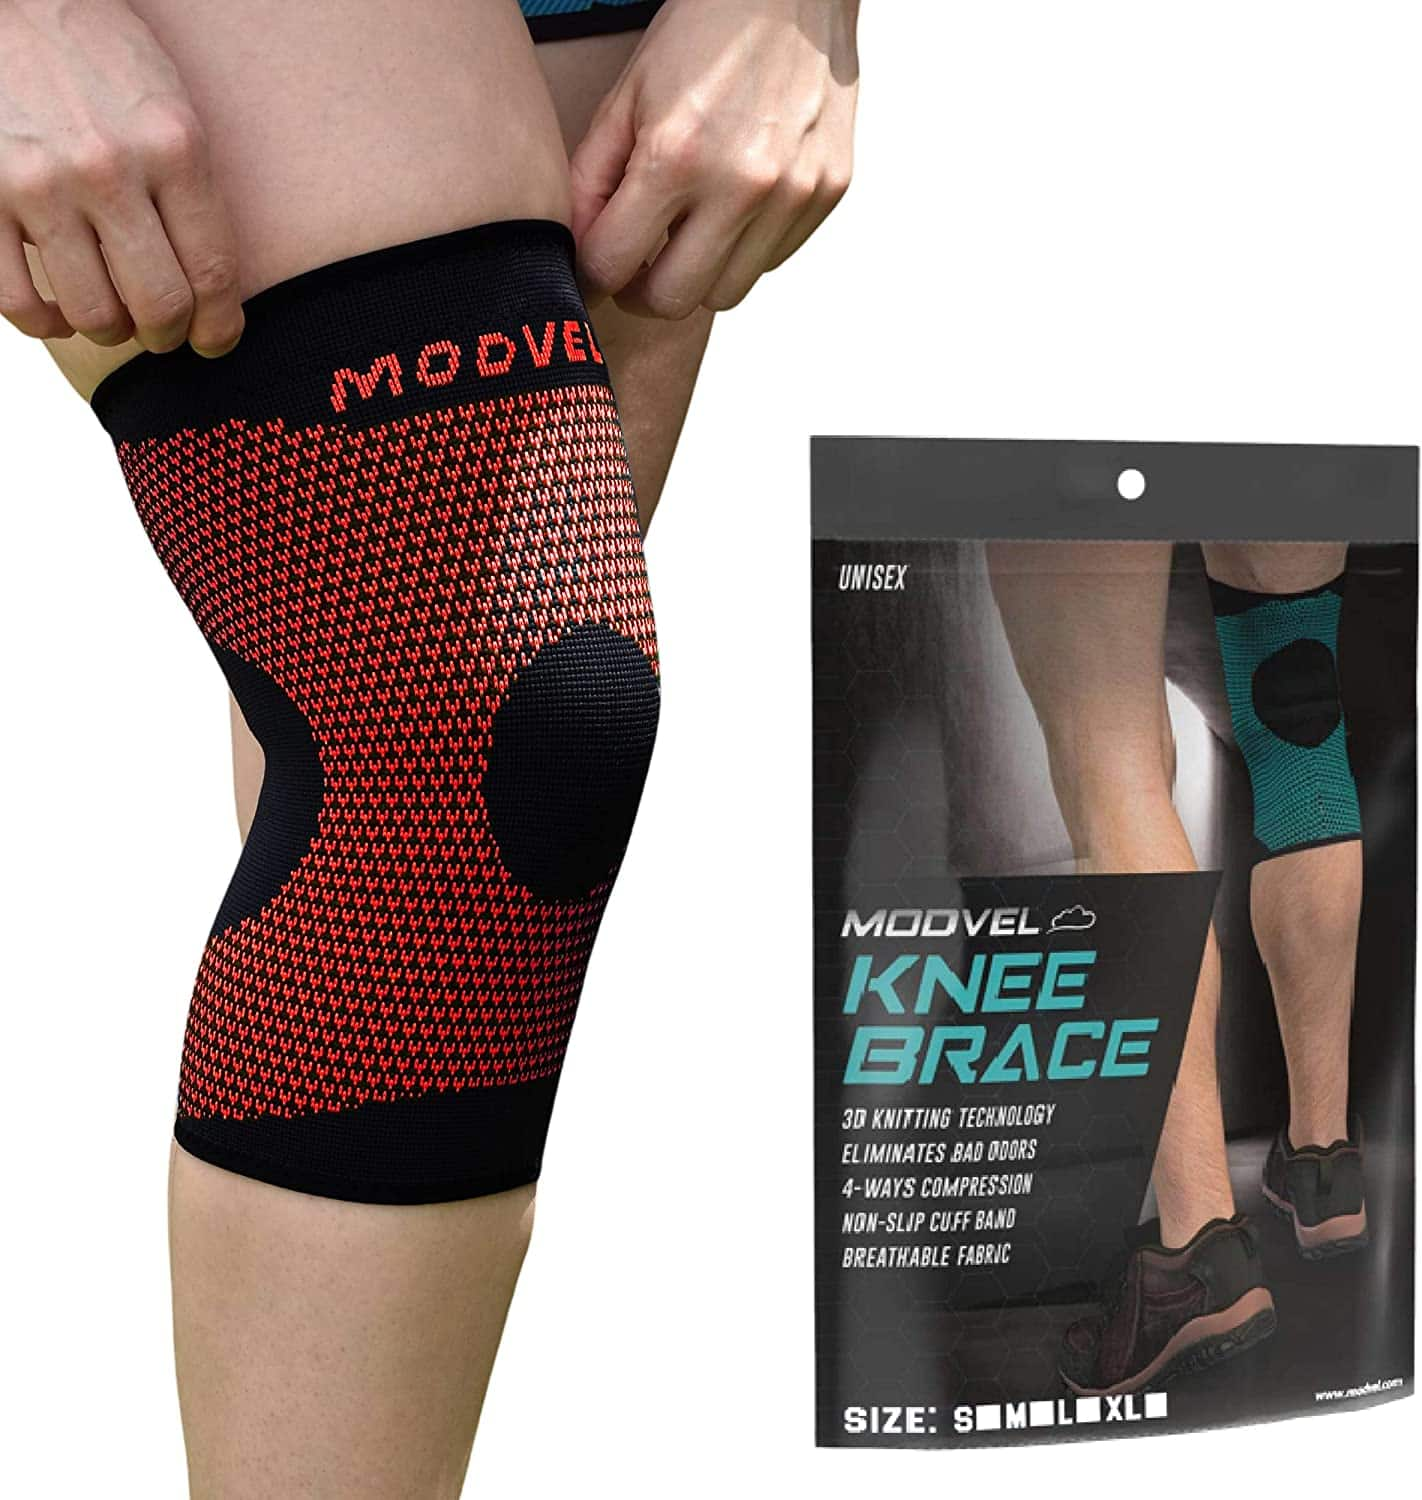 Modvel Compression Knee Sleeve: Single Red $6.40 (or less), Single Turquoise $7.43 & More at Amazon